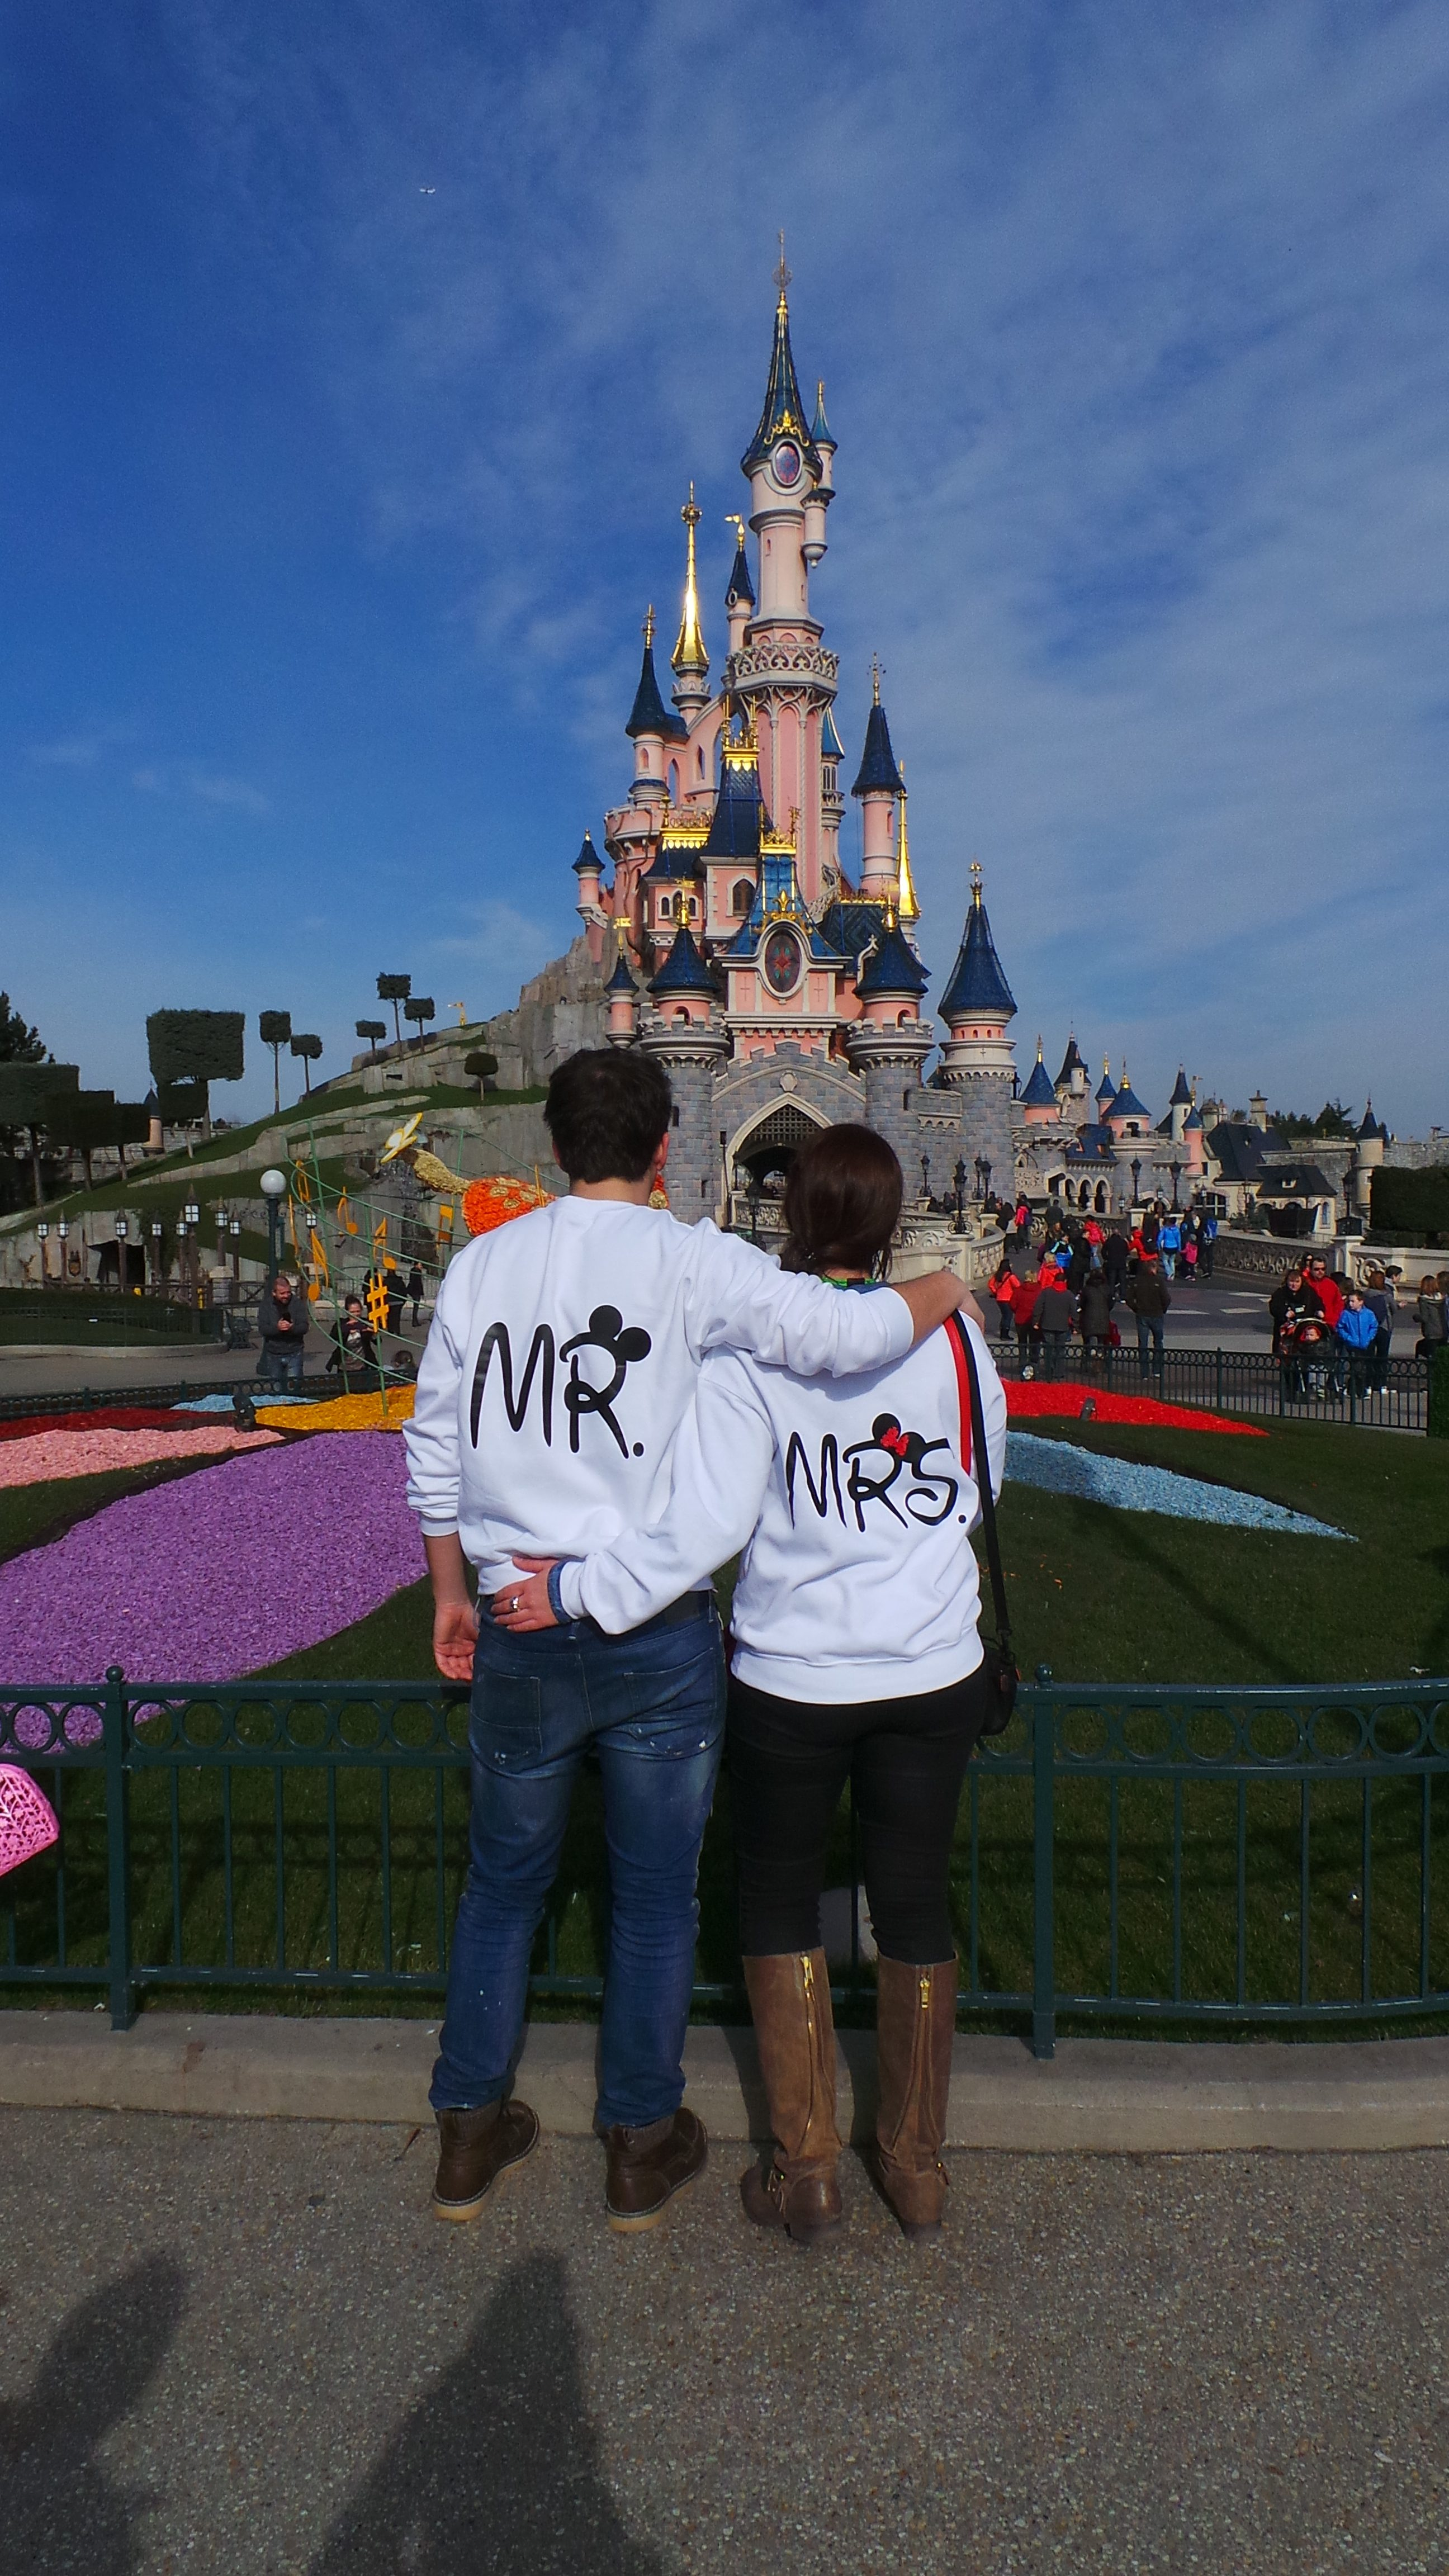 Mouse match disney dating for seniors. Mouse match disney dating for seniors.